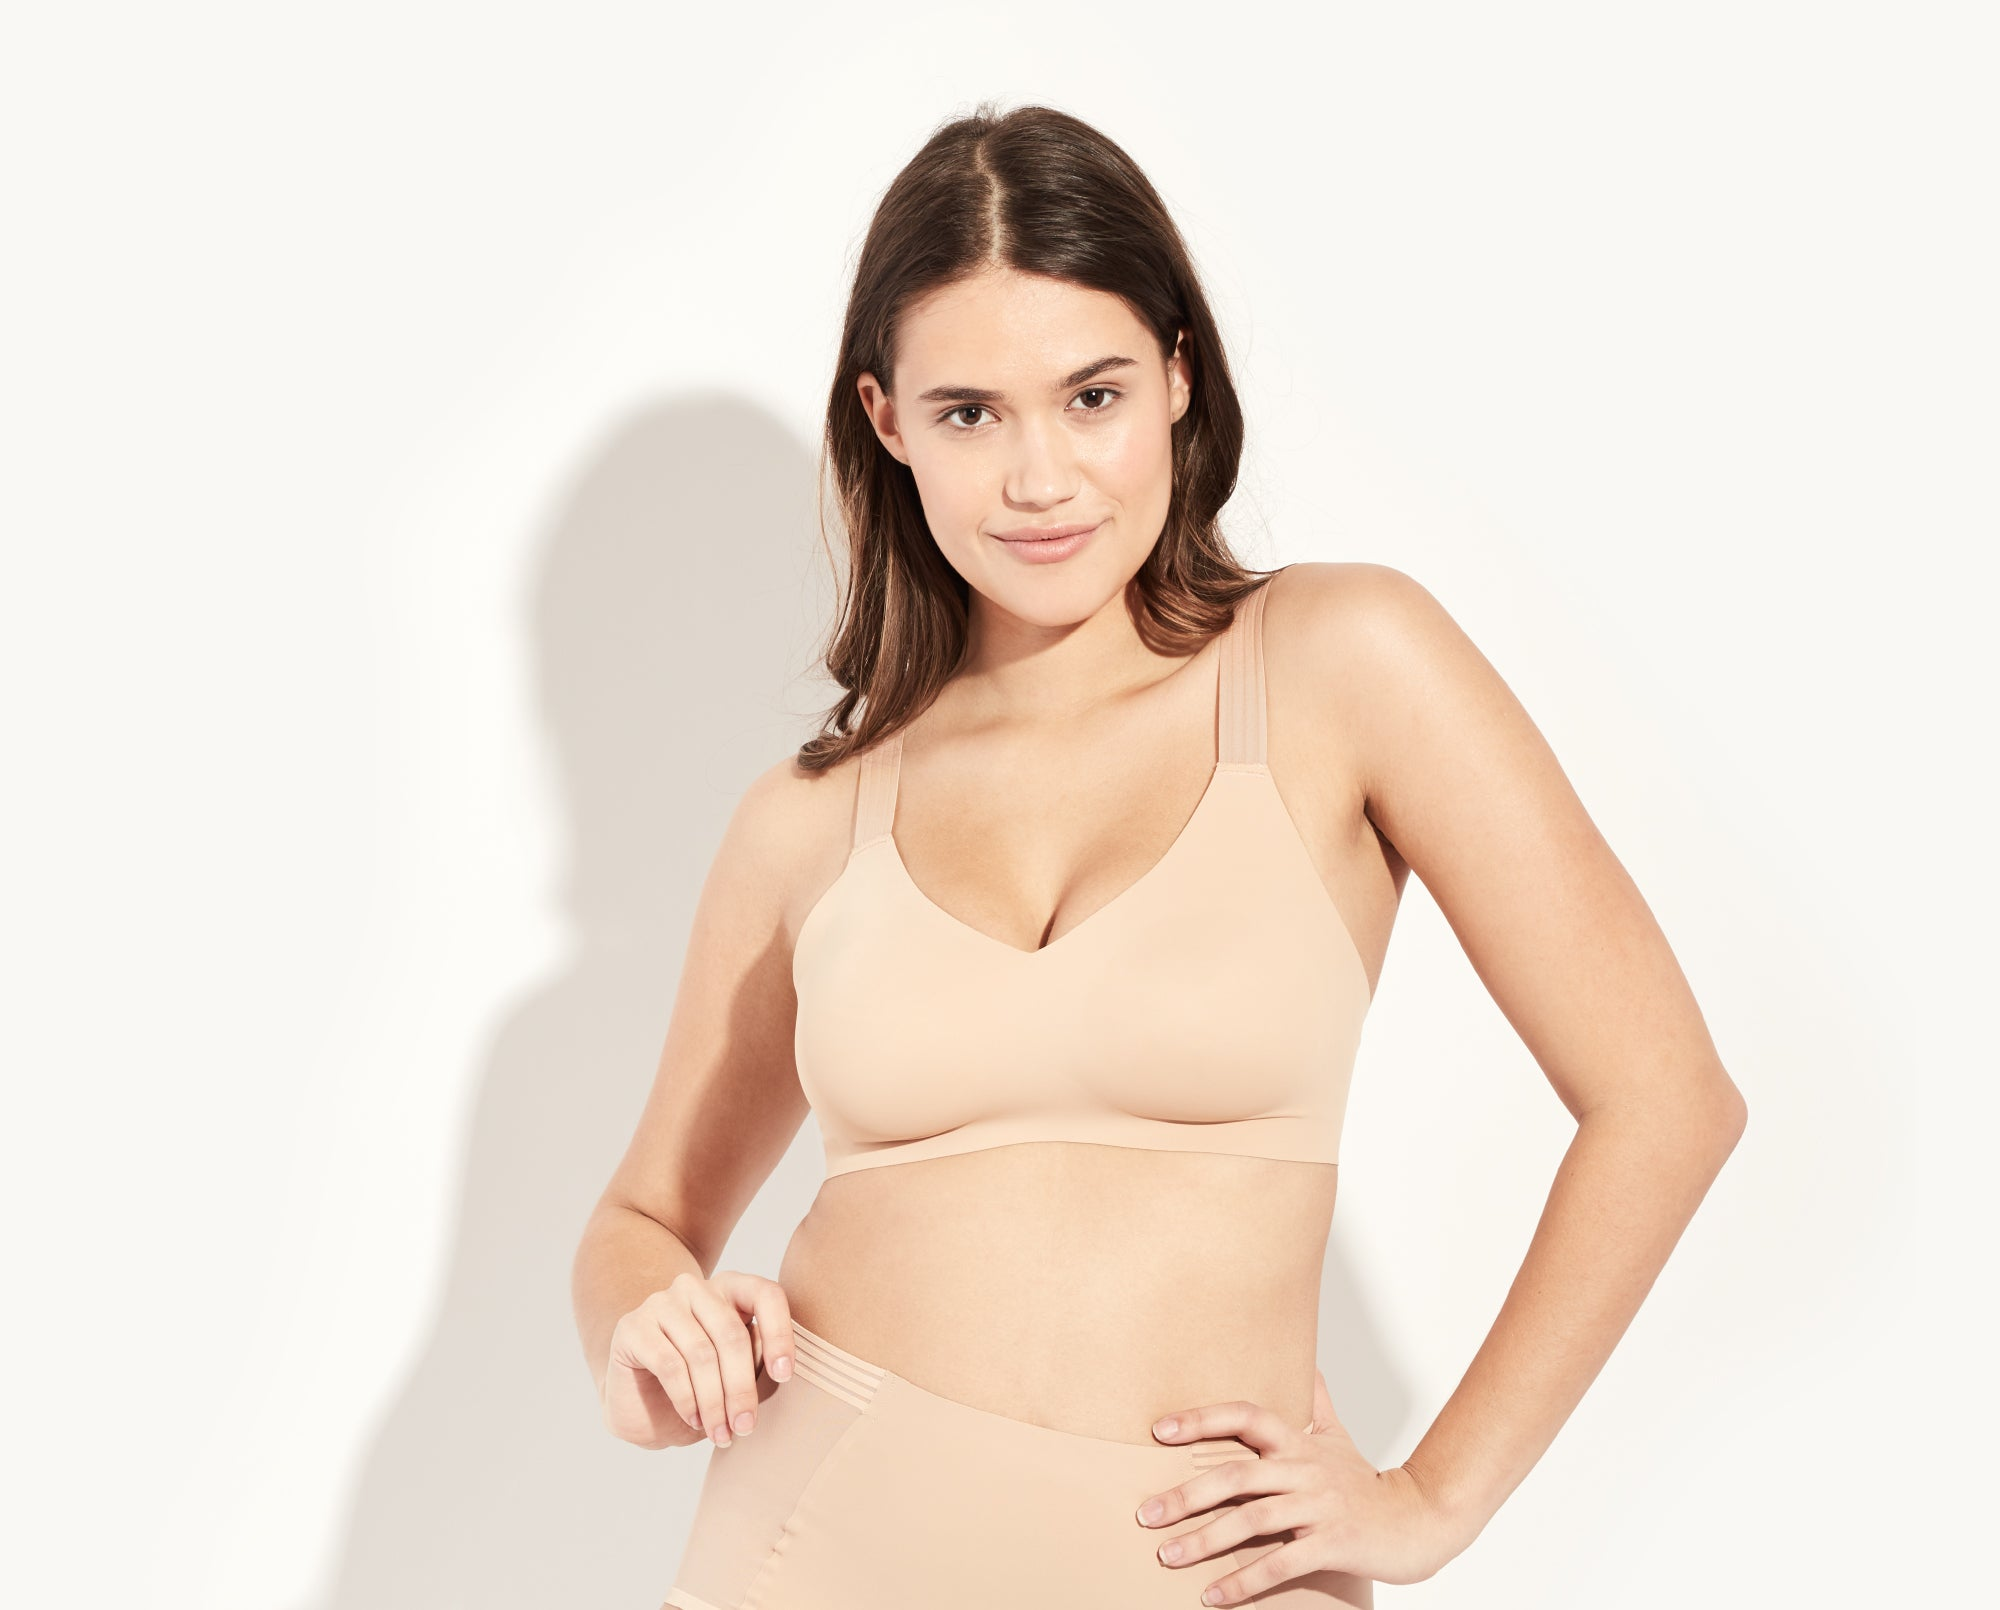 Luma is a 34D, she's wearing a size 4 bra. Her bottoms are the Luxe High Rise. color: Beige